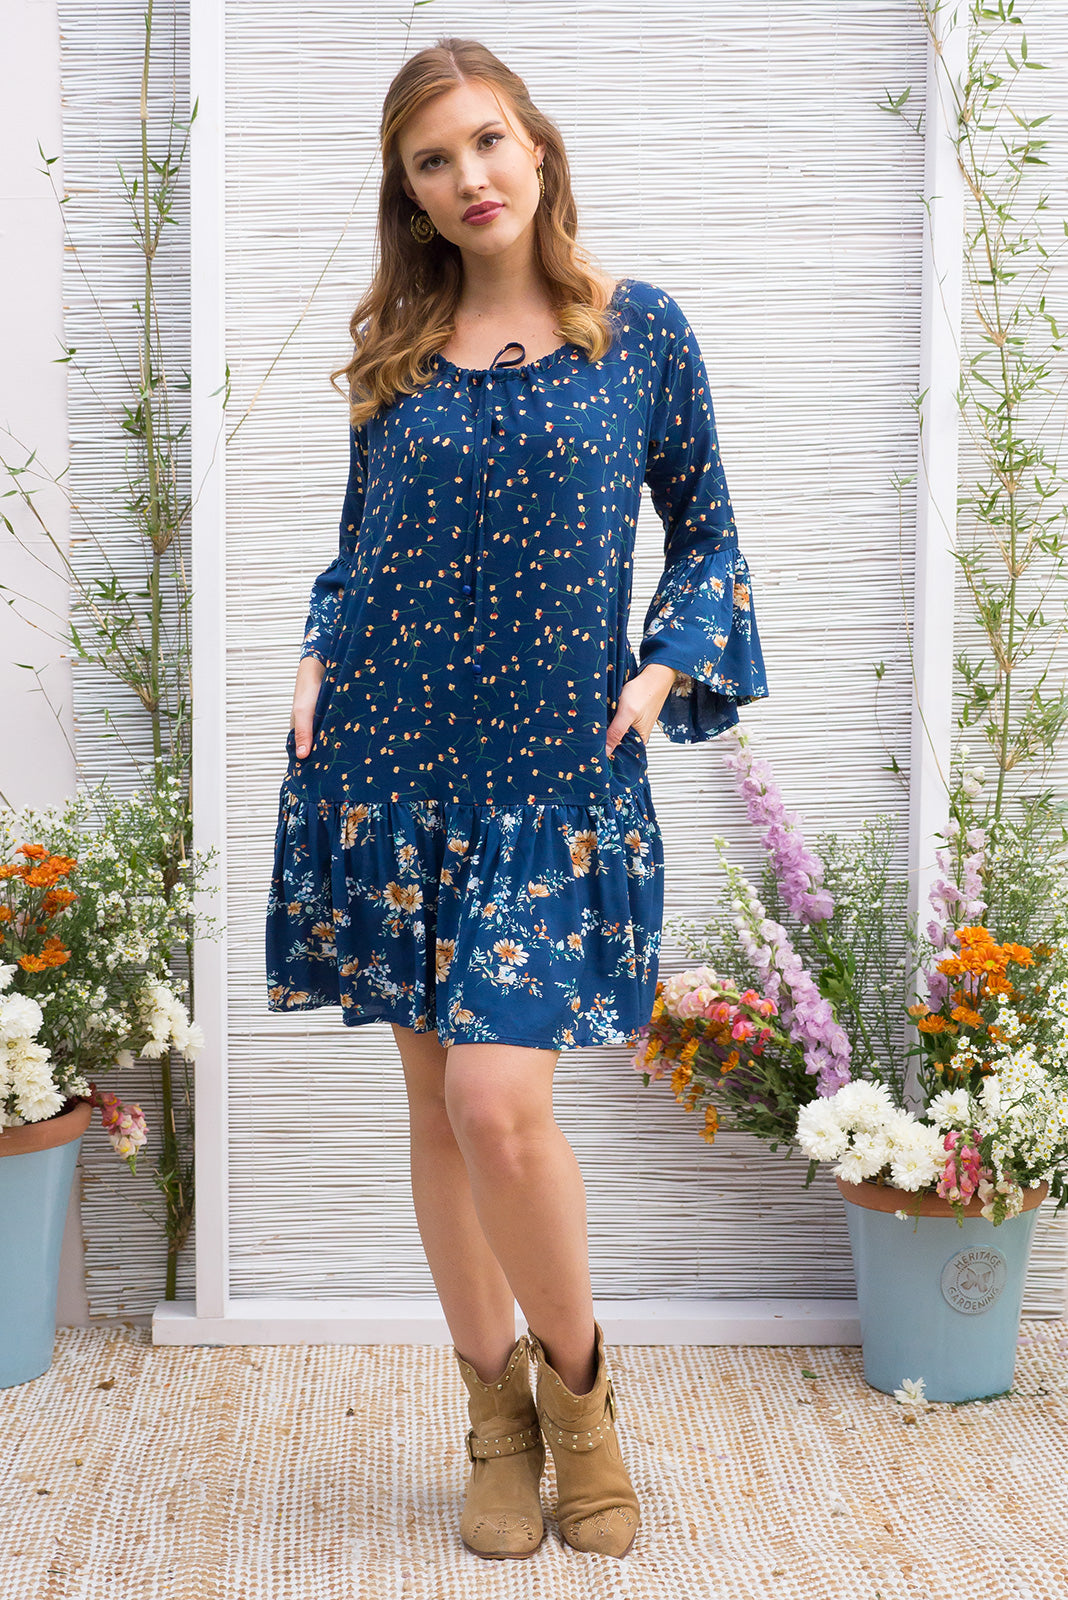 Moon River Navy Dress features a drop waist and 3/4 sleeves with a boho frill and a cord drawstring neck in a intricate boho mix and match vintage print in tonal blue shades on a soft woven rayon